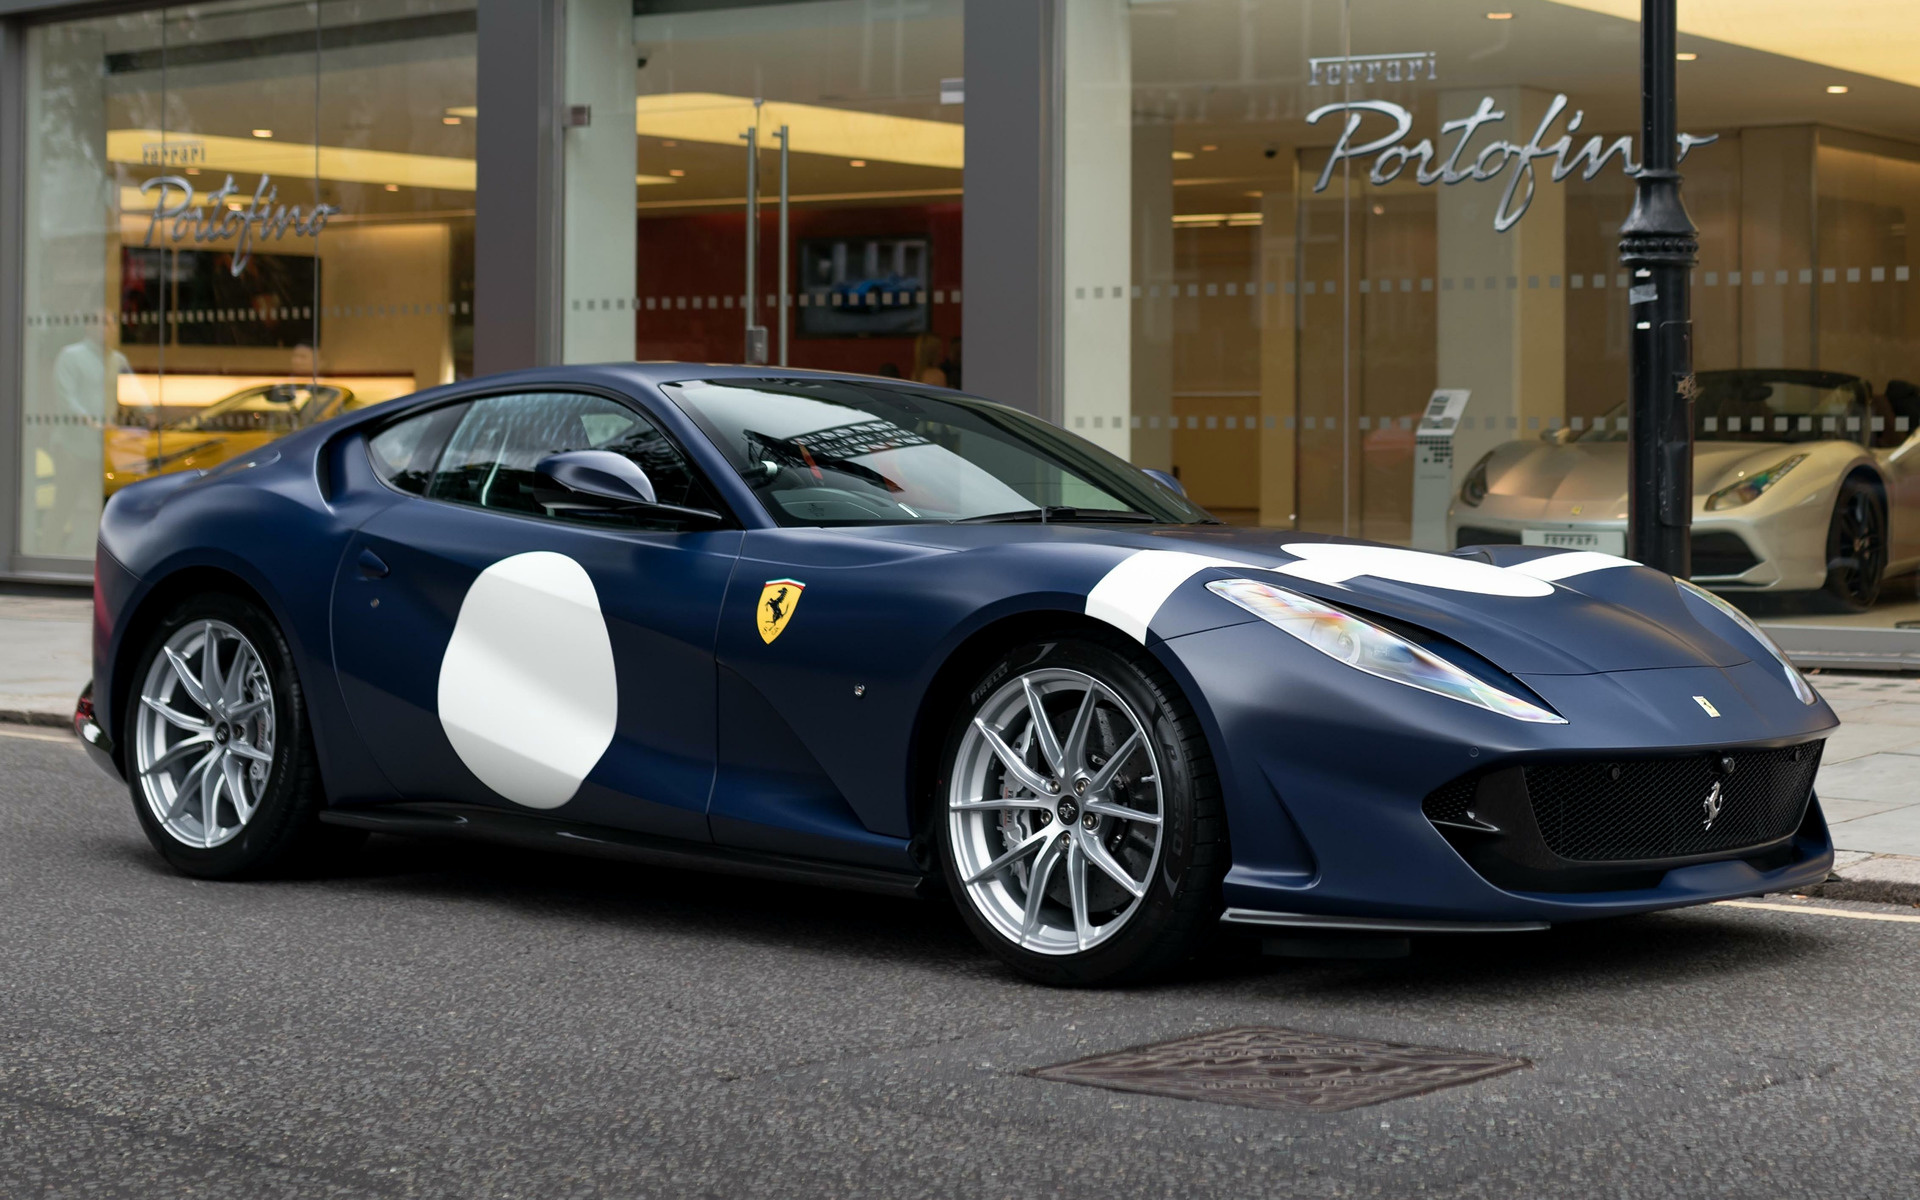 Ferrari 812 Superfast Tailor Made Inspired By Stirling Moss 2018 Uk Wallpapers And Hd Images